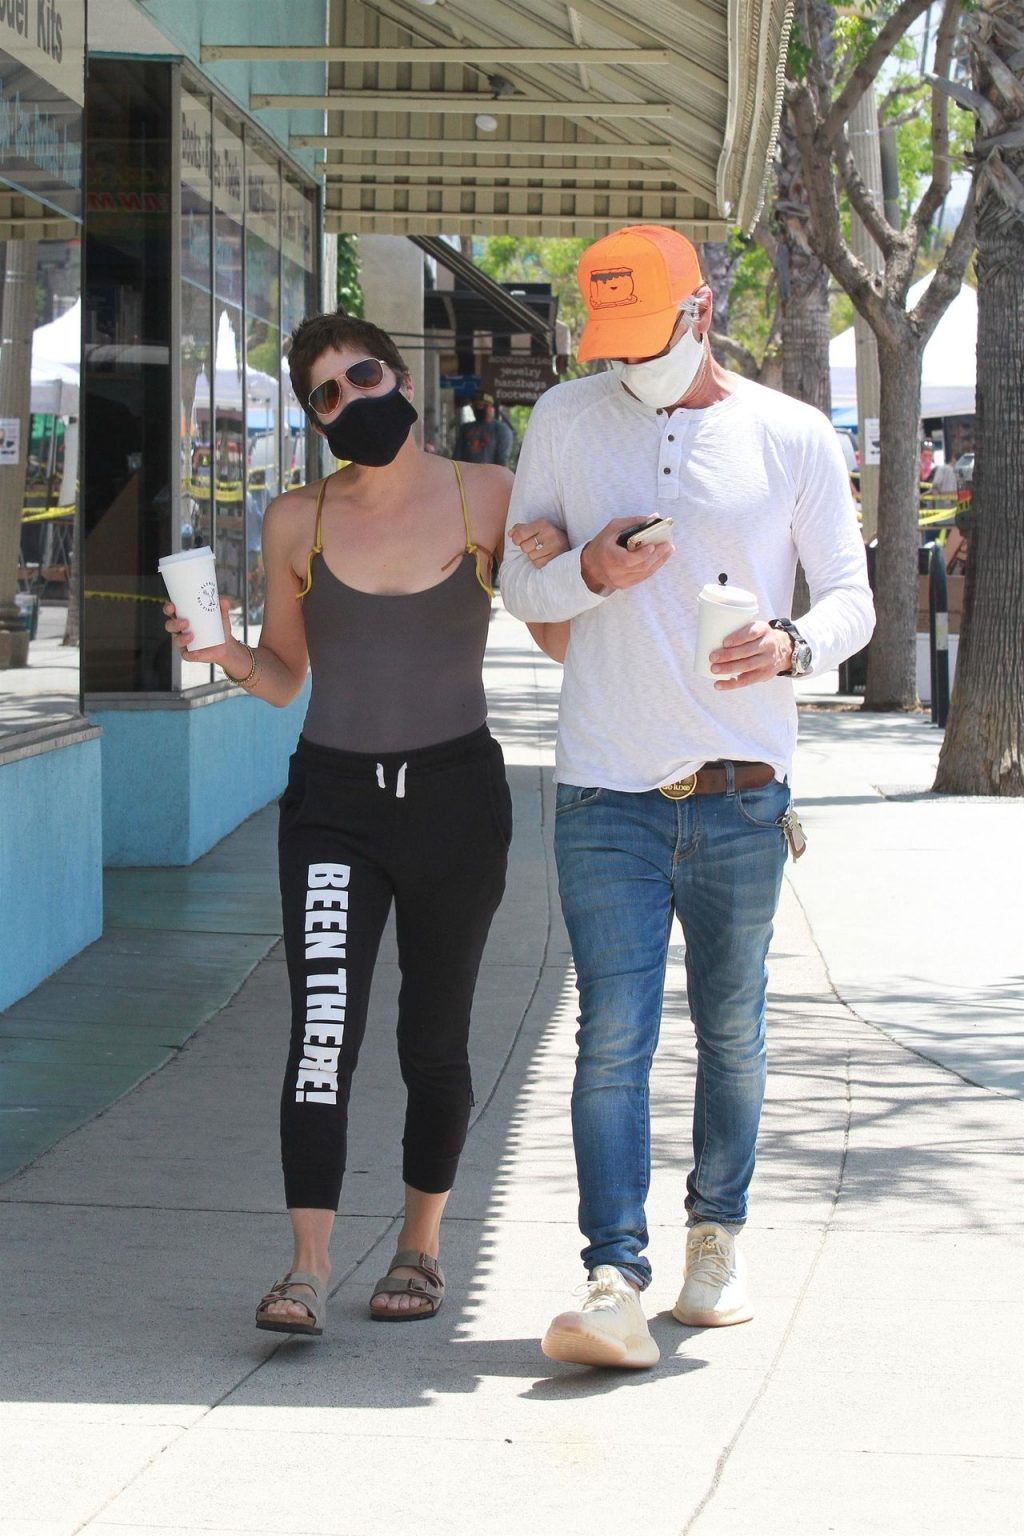 Selma Blair & Ron Carlson Share Some PDA on Mother's Day (111 Photos)